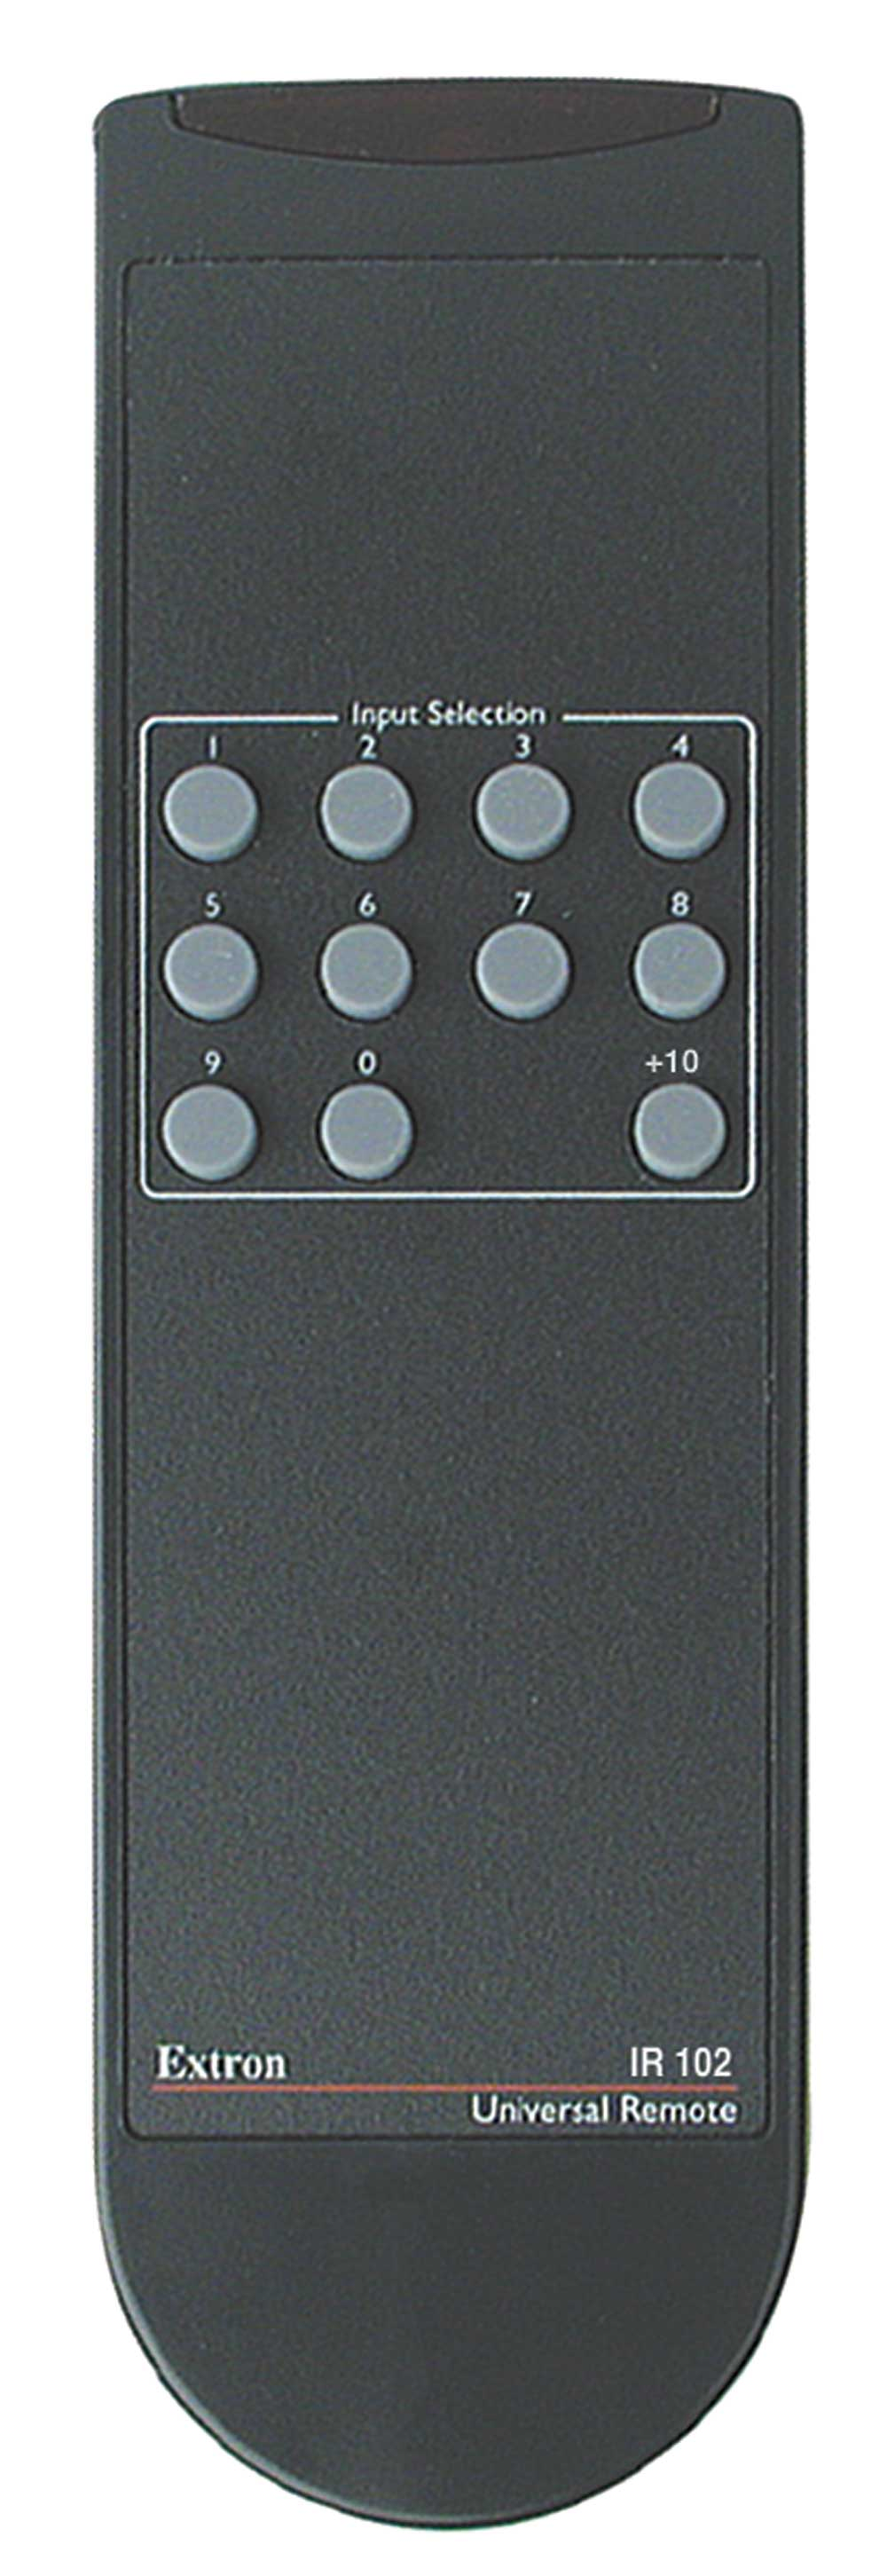 The Extron IR 102